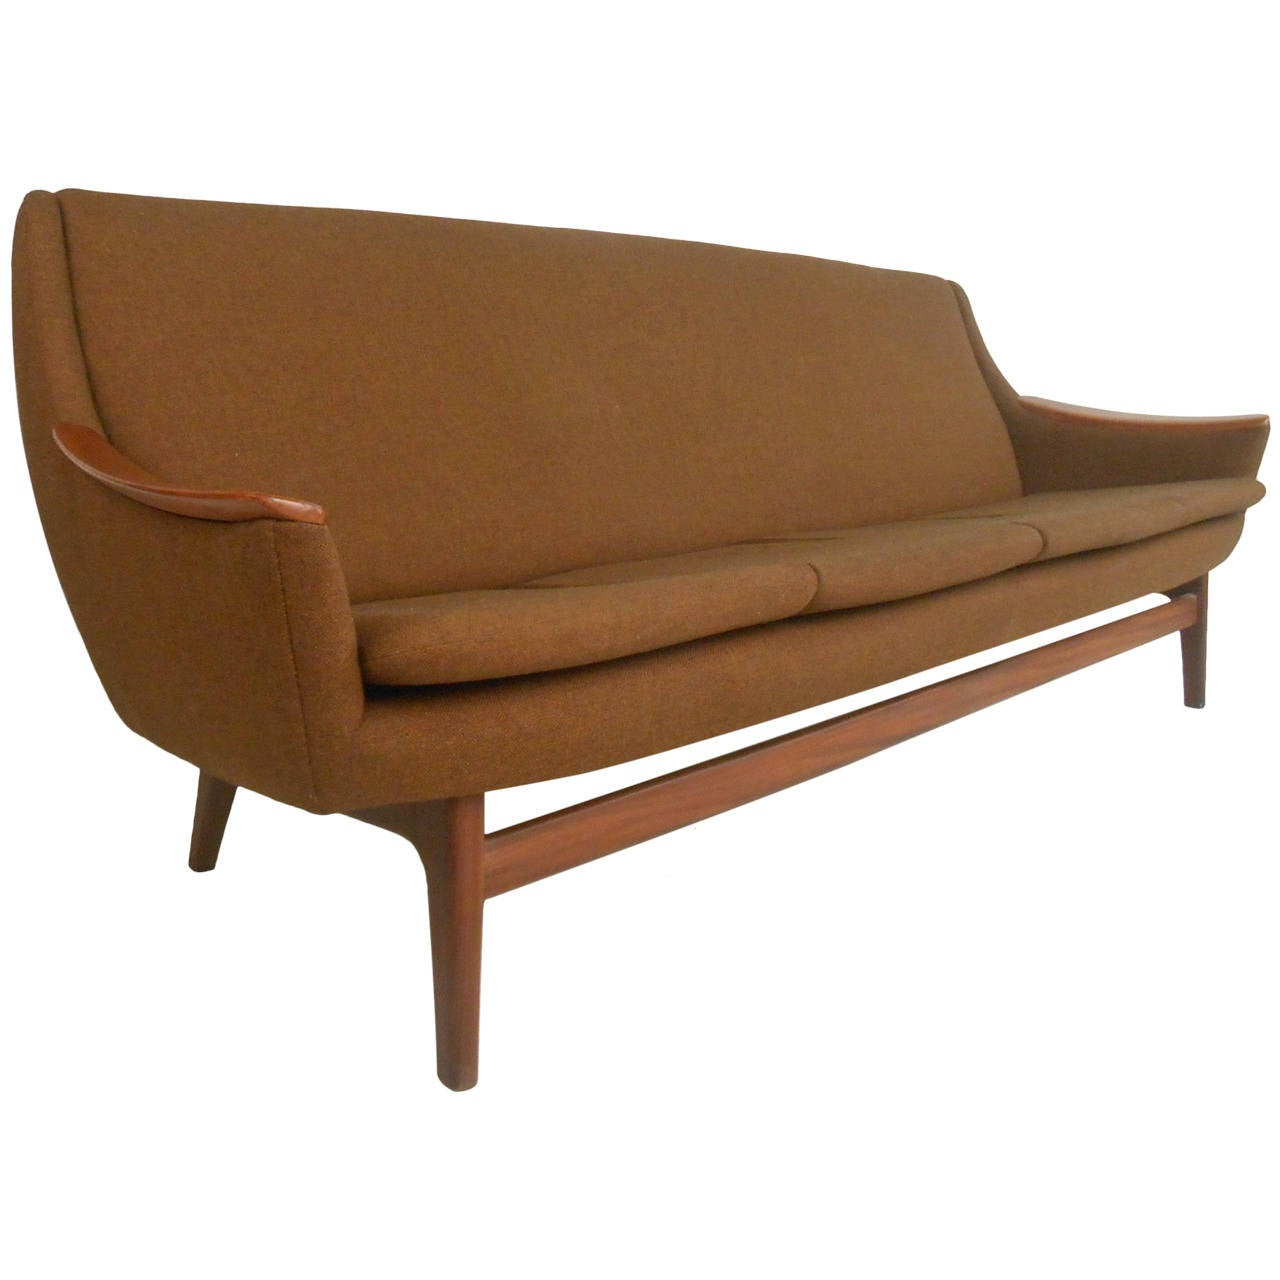 Long scandinavian modern sofa for sale at 1stdibs for Long couches for sale